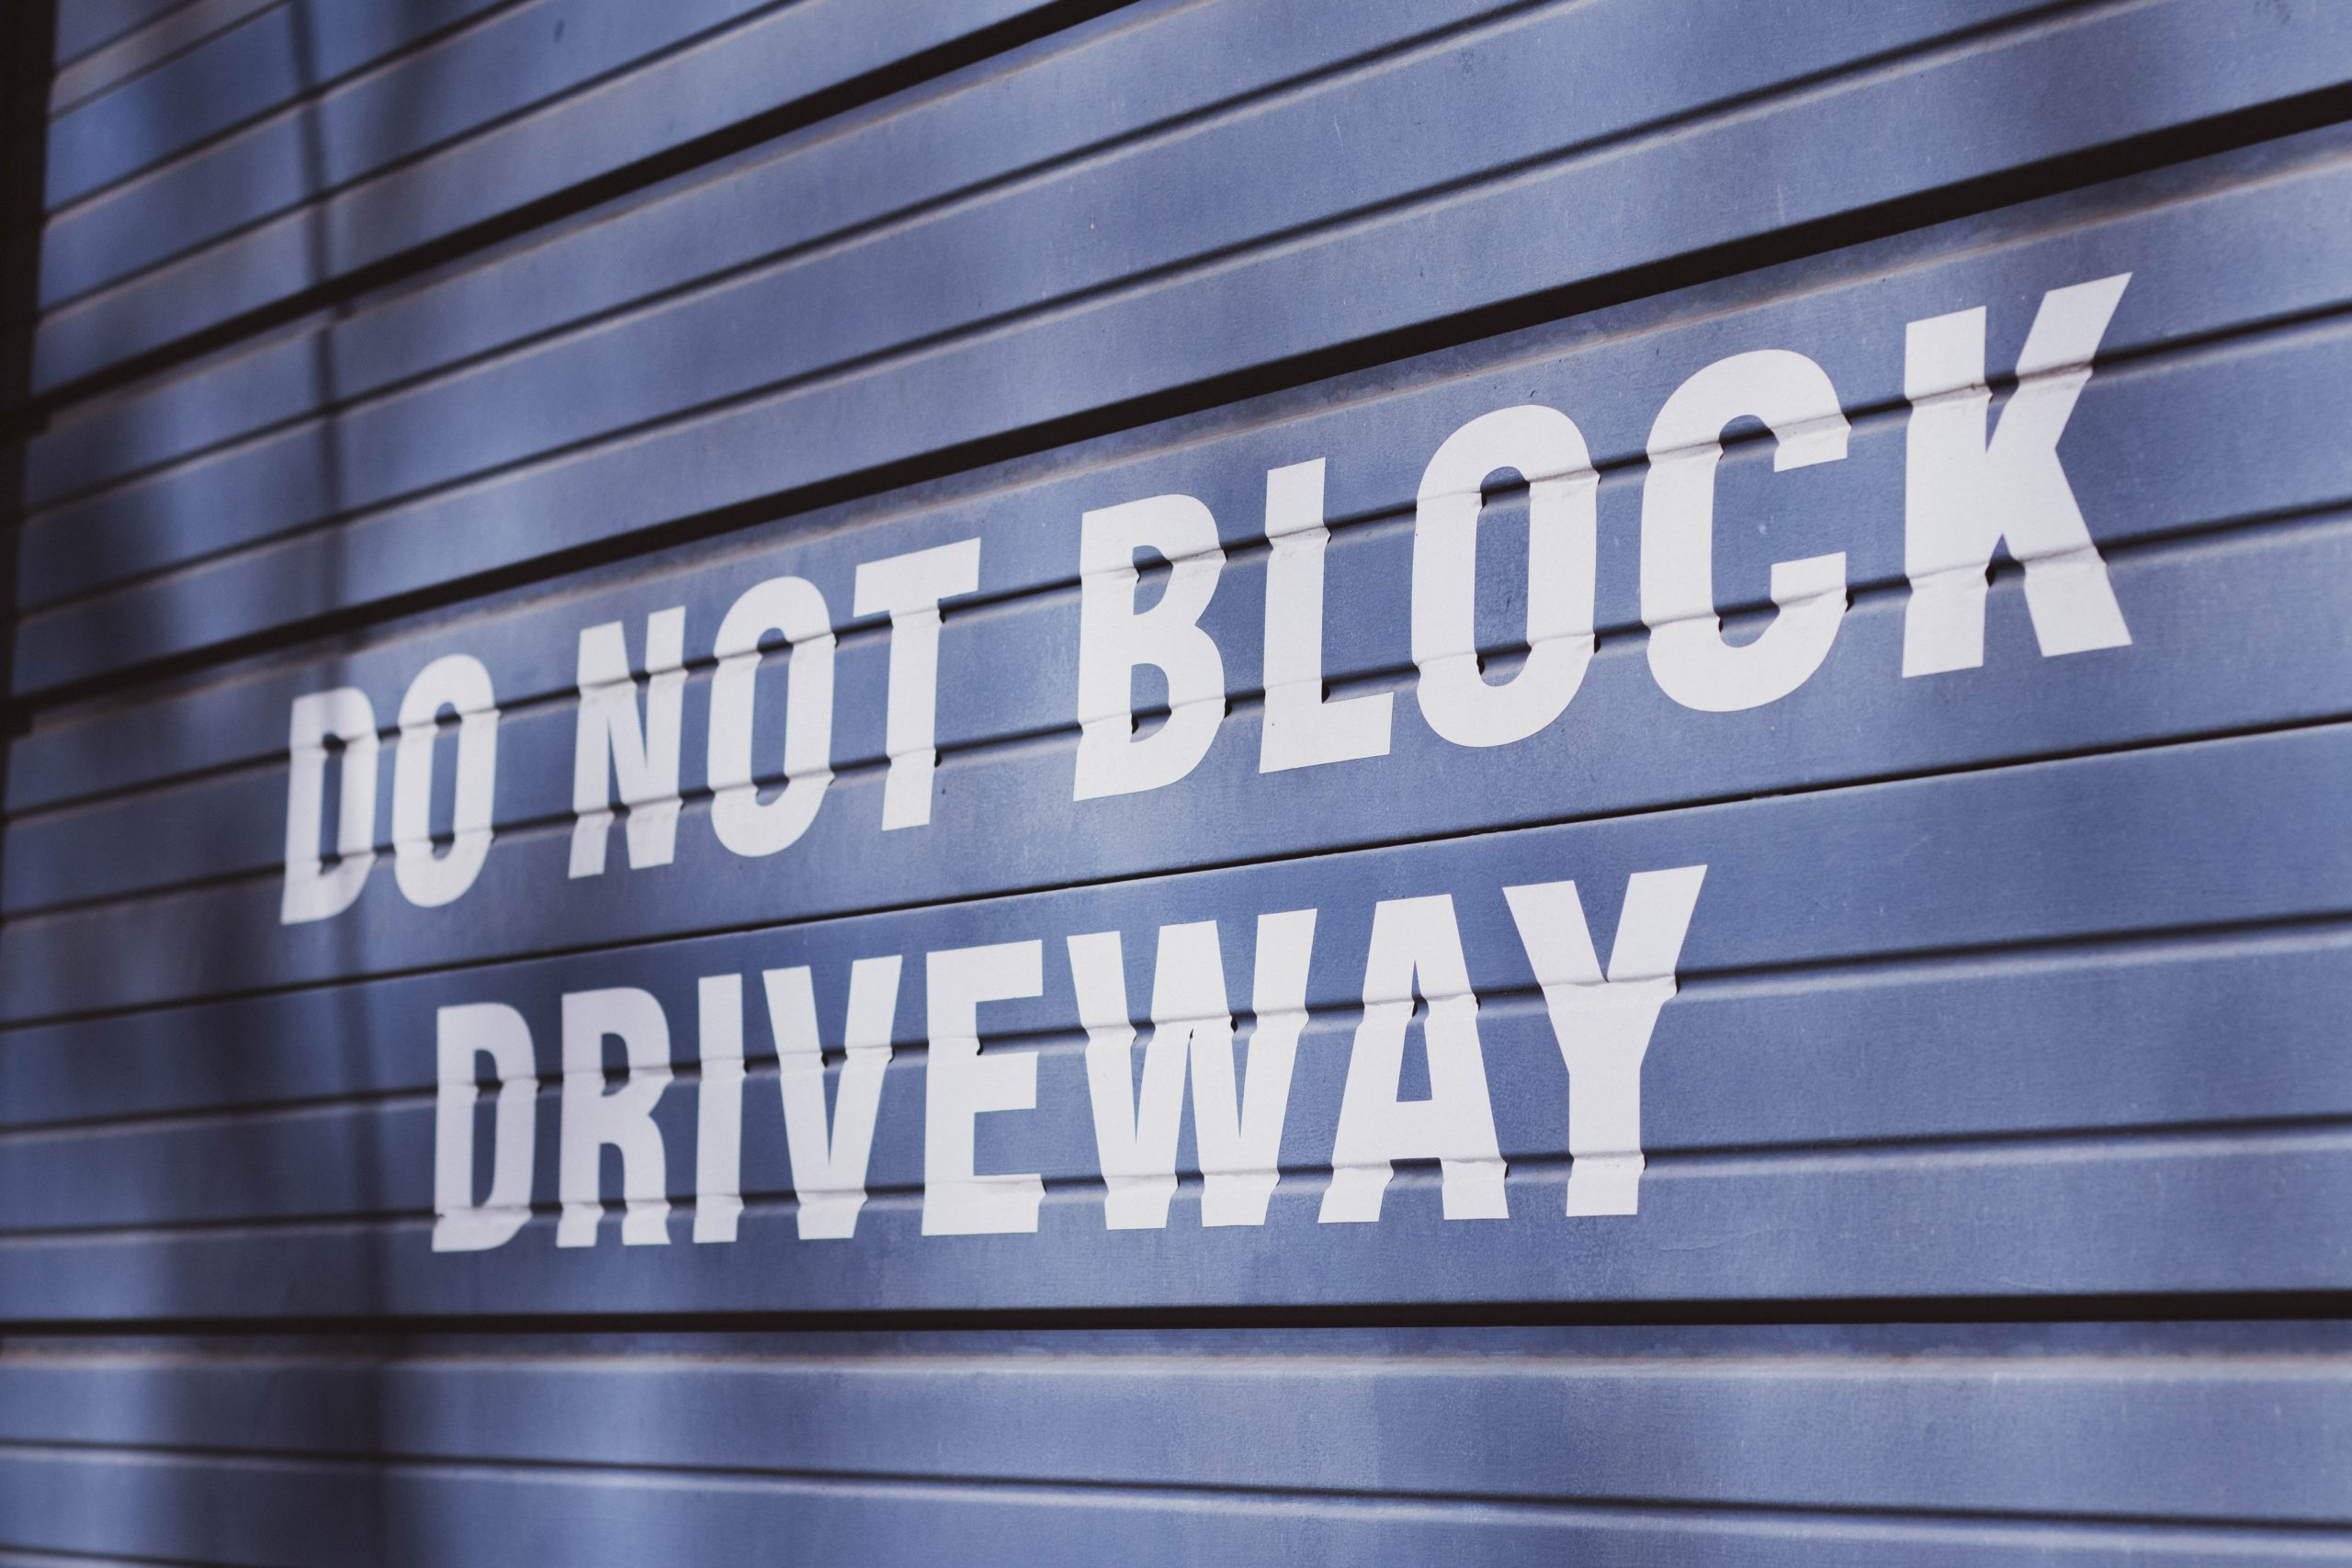 Do not block home driveway sign